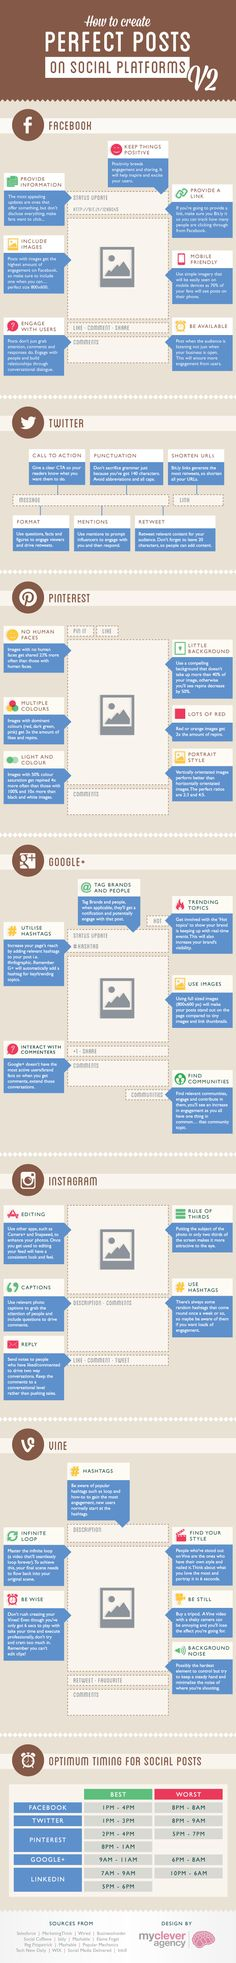 How to create the perfect #SocialMedia post. #Infographic #Pinterest